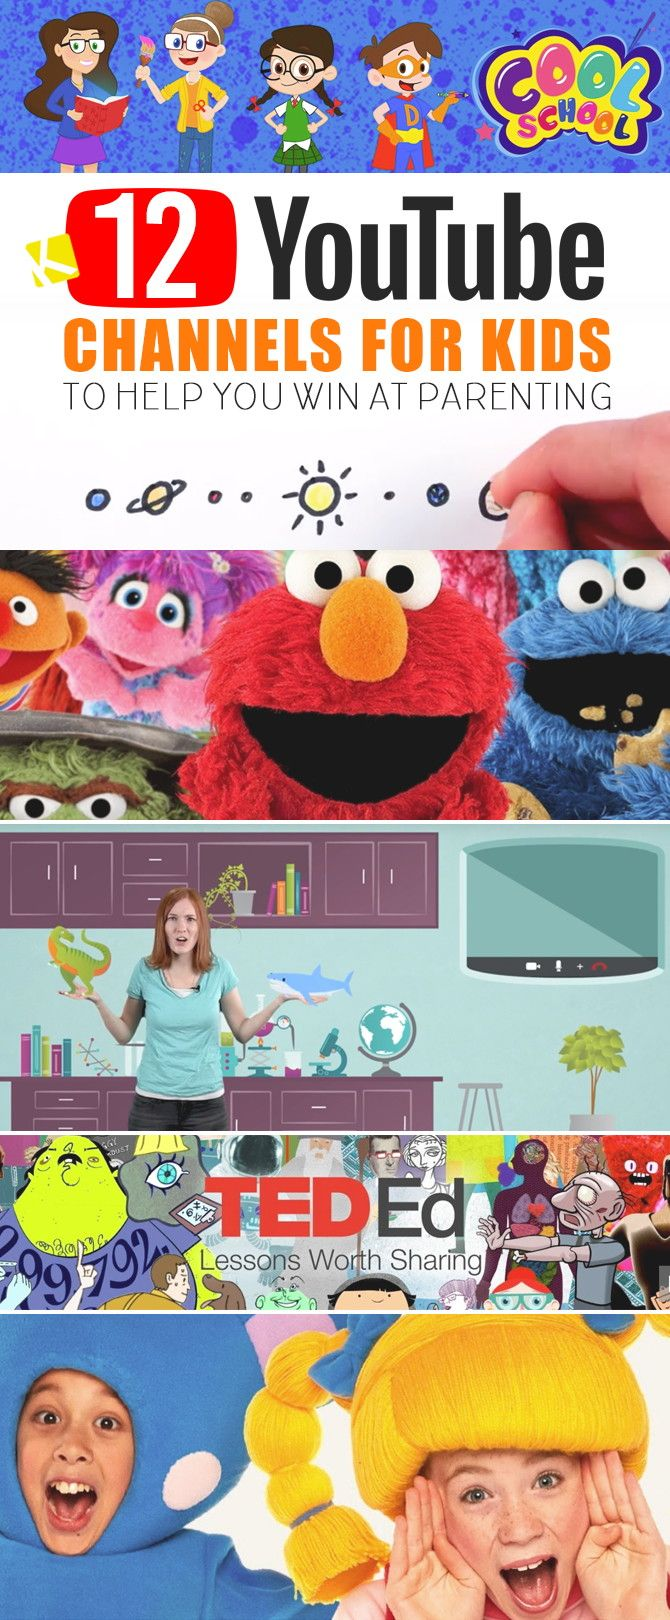 12 Best YouTube Channels for Kids That Will Help You Win at Parenting - The Krazy Coupon Lady